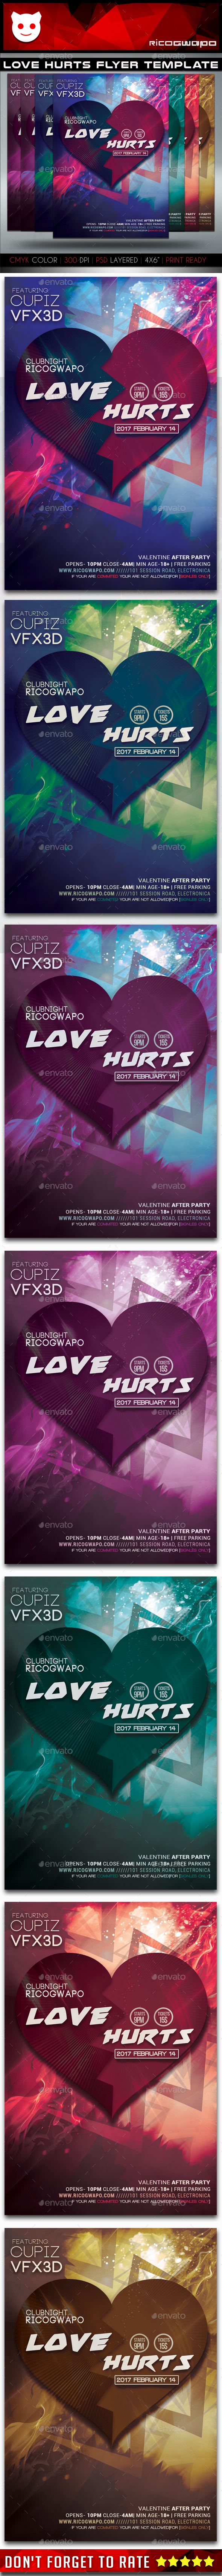 Love Hurts Flyer Template - Events Flyers